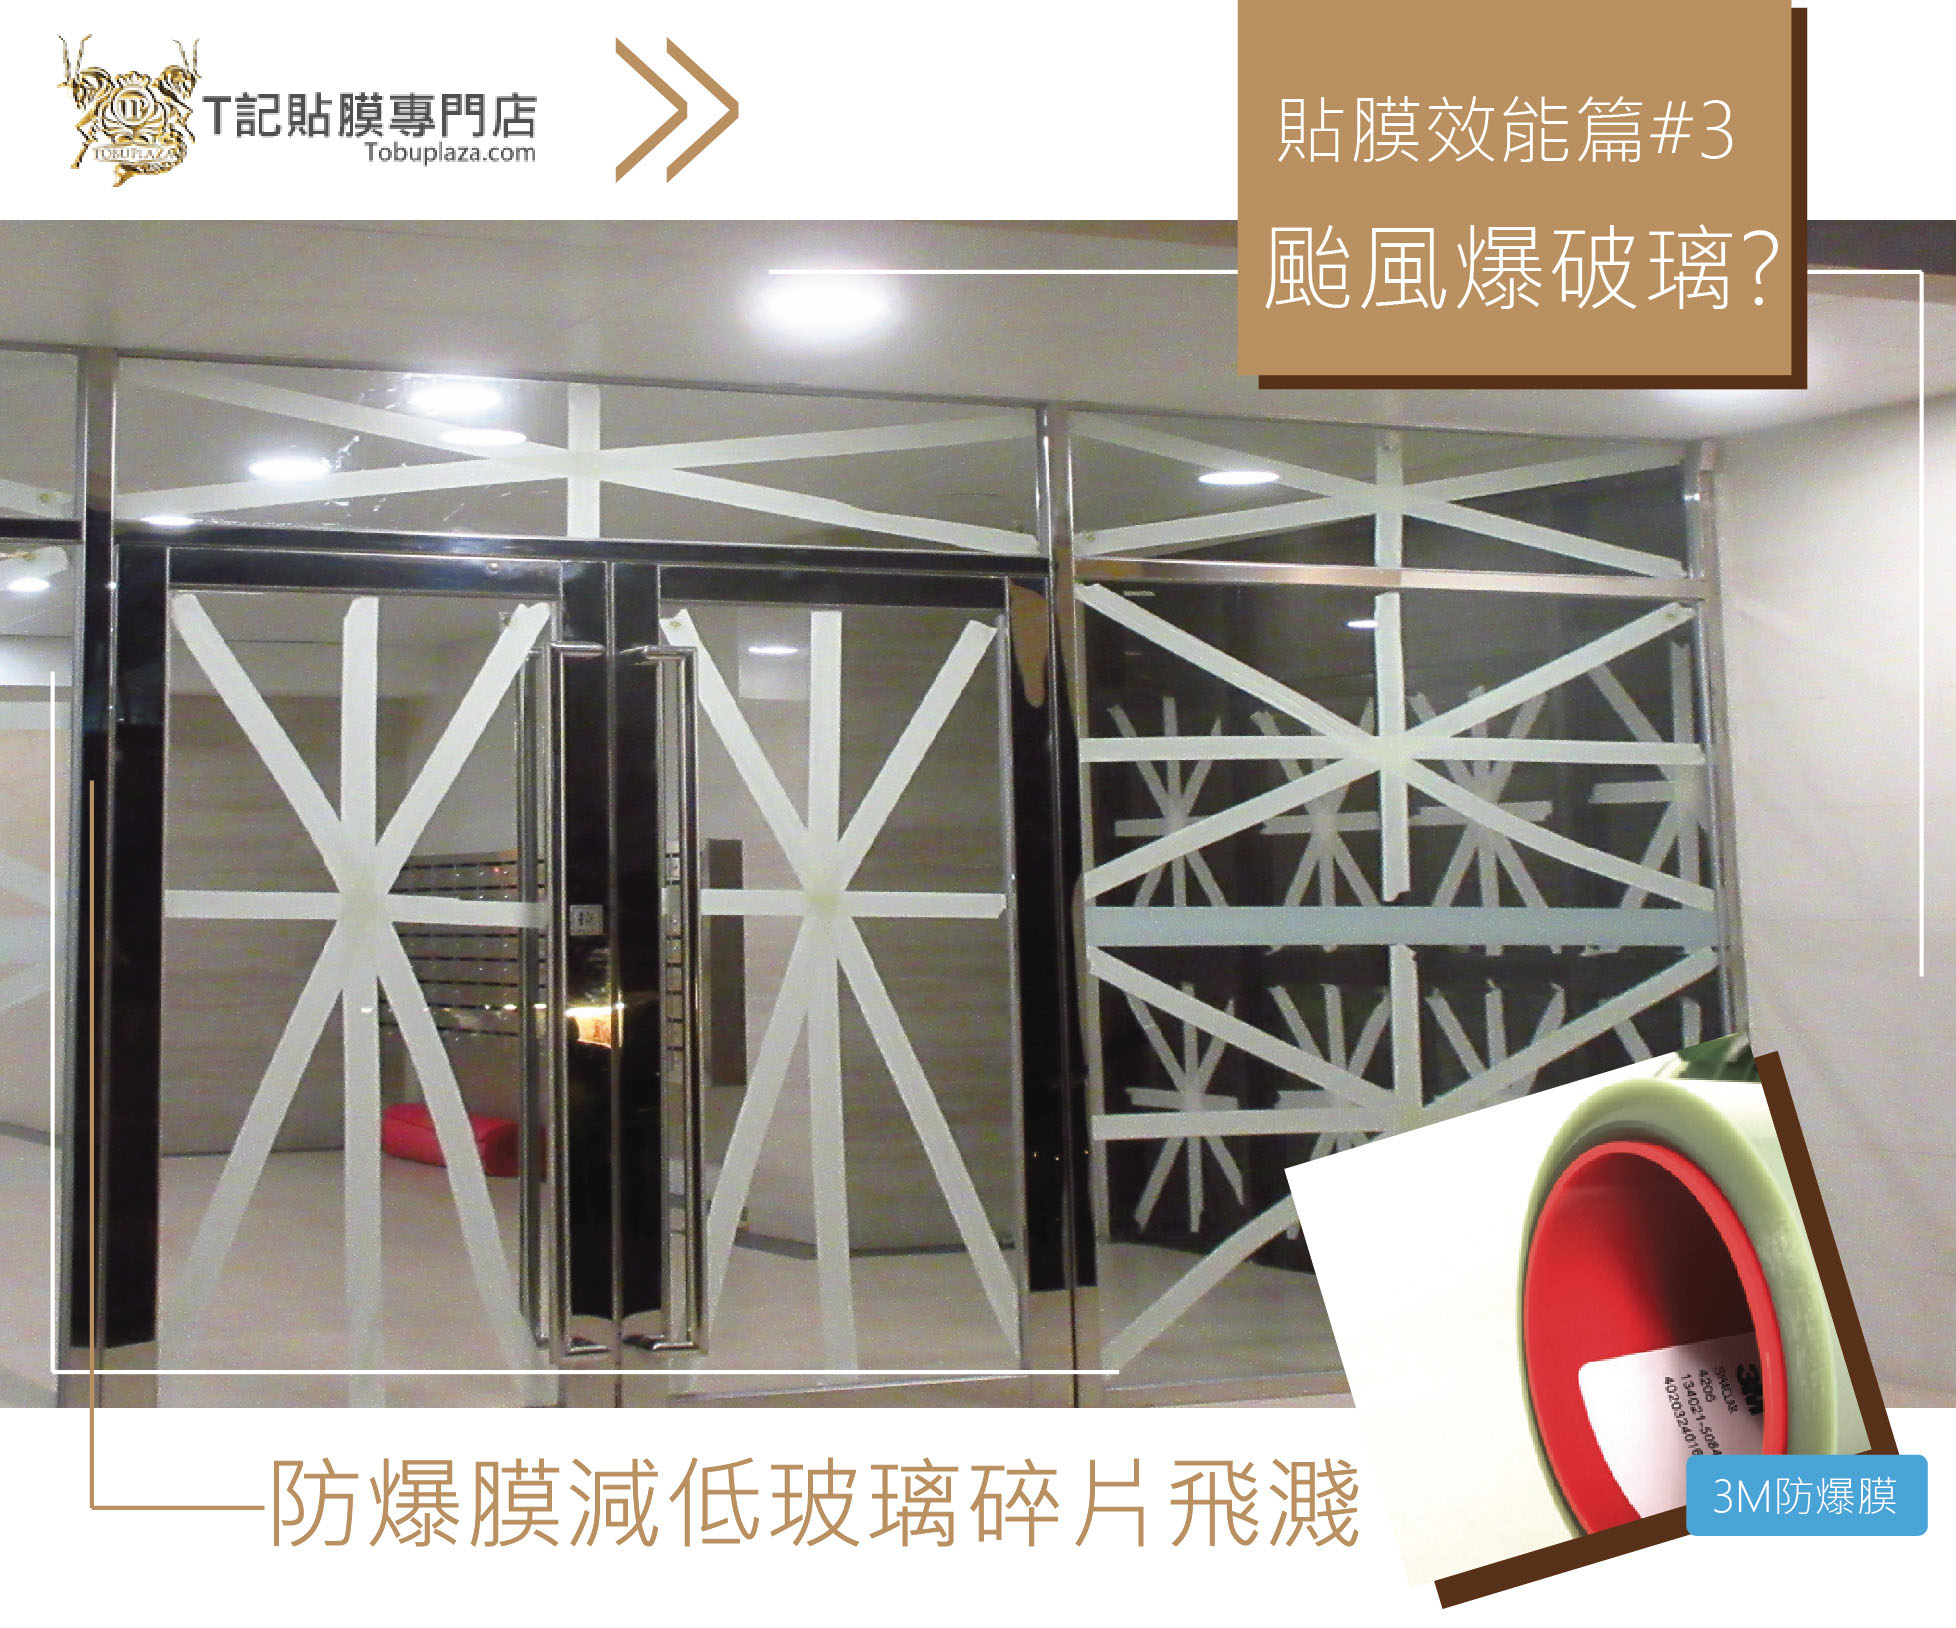 3M Safety n Security 防爆膜